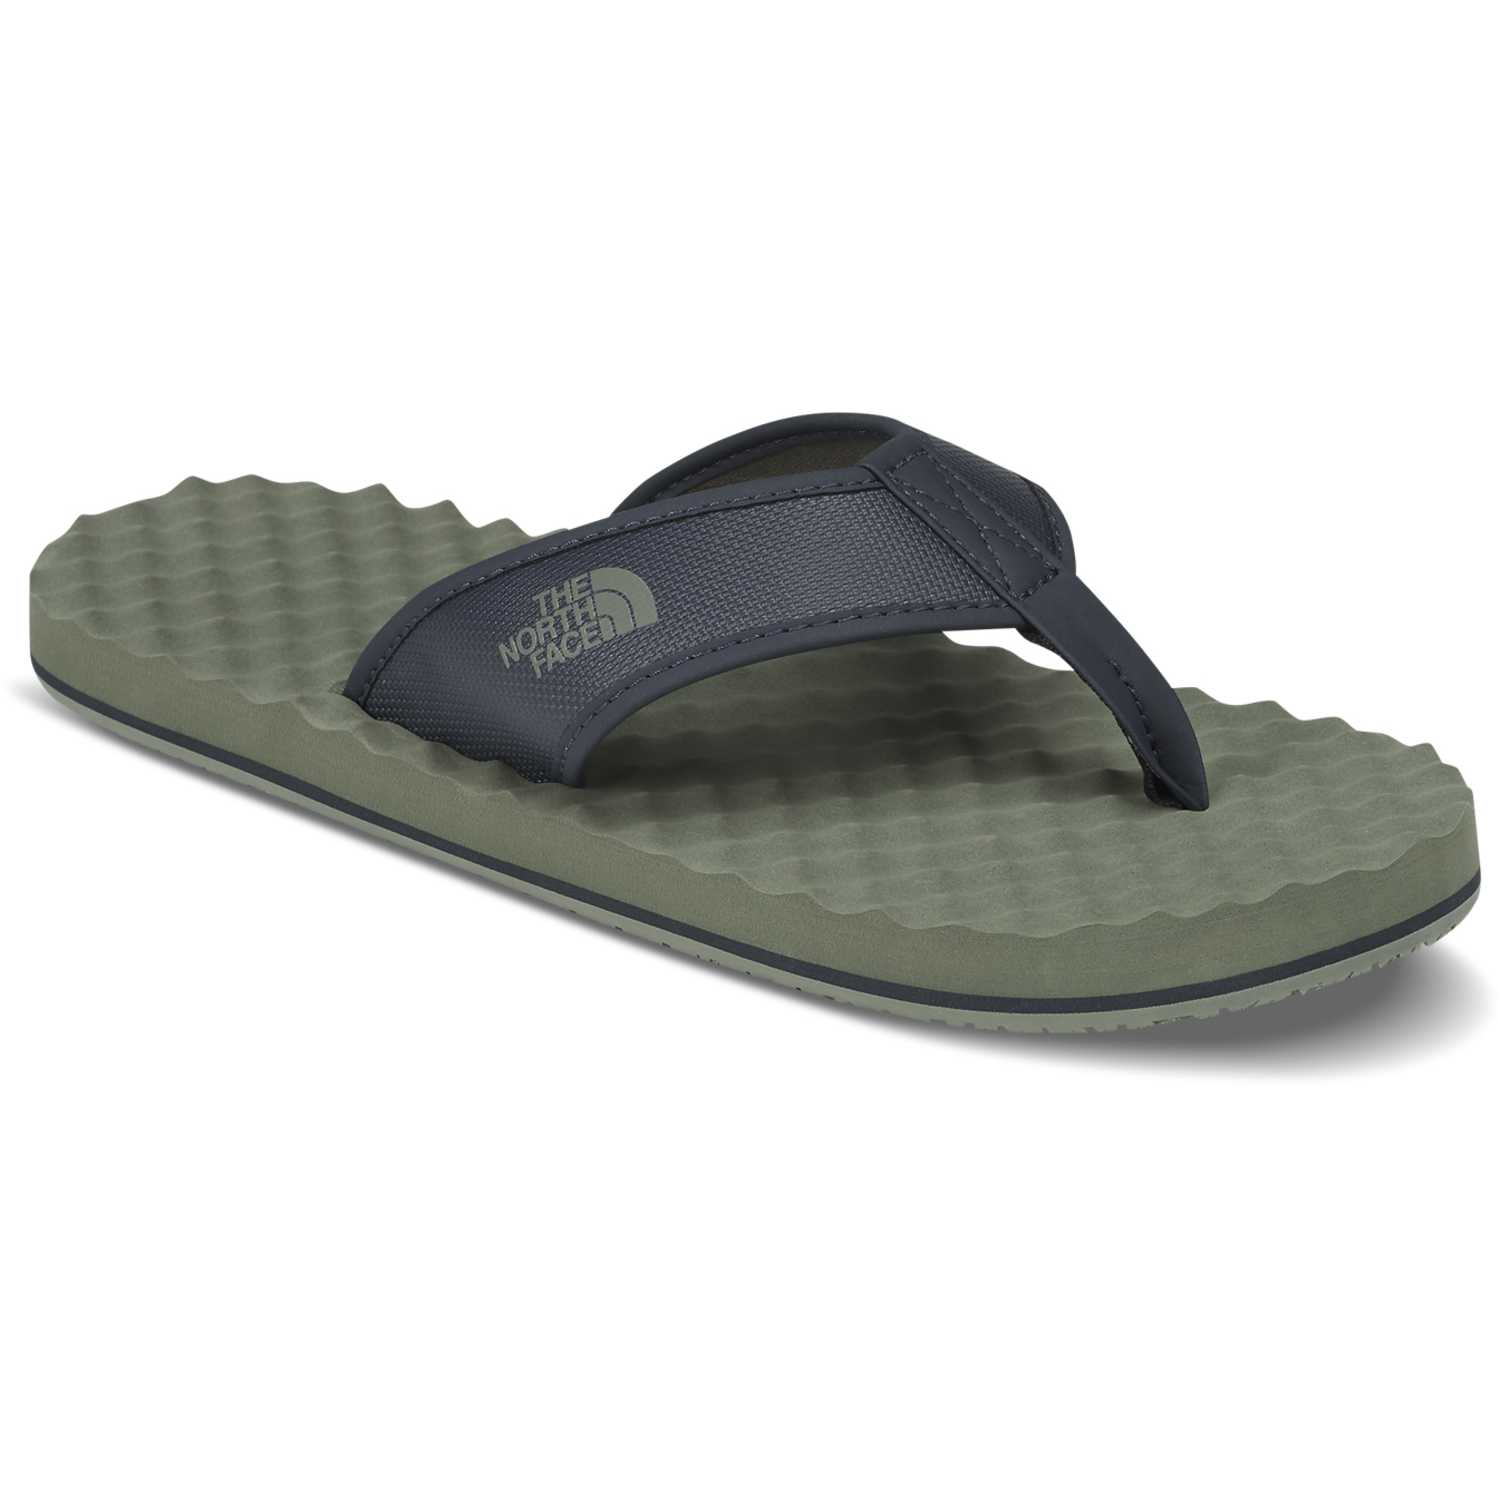 Billeteras de Mujer The North Face Verde / plomo m base camp flip-flop